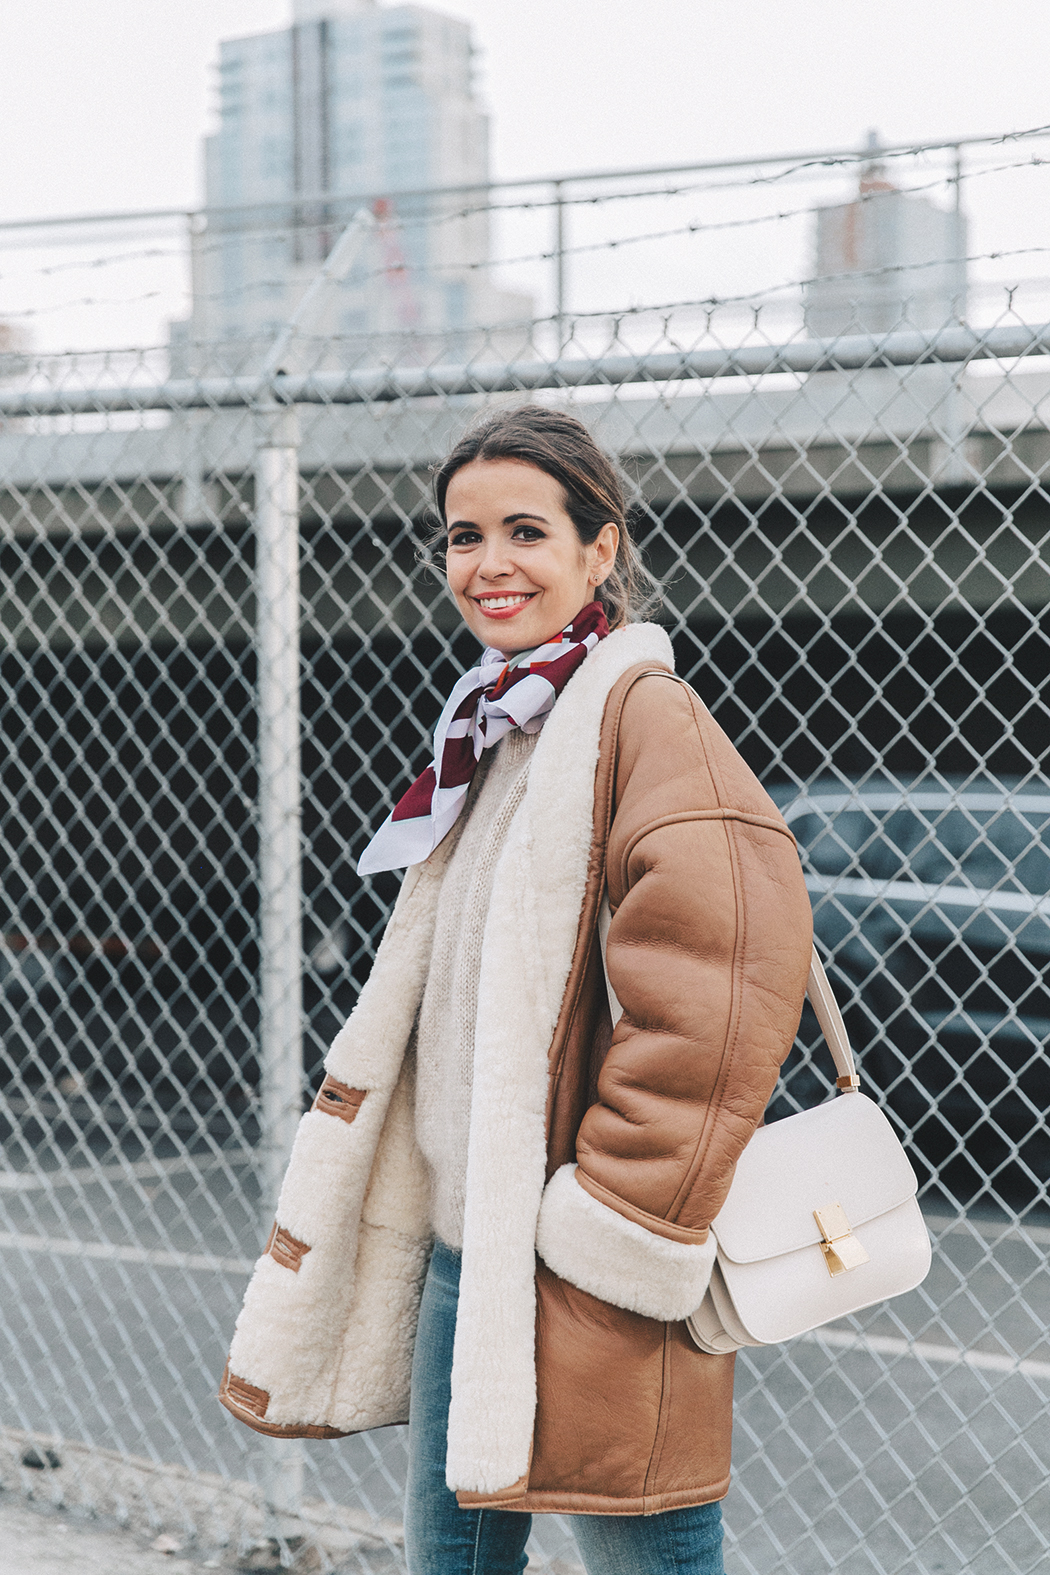 Collage_Vintage-Vintage_Coat-Jeans-Mother_Denim-Vintage_Scarf-White_Boots-Outfit-NYFW-Street_Style-Celine_Box-13